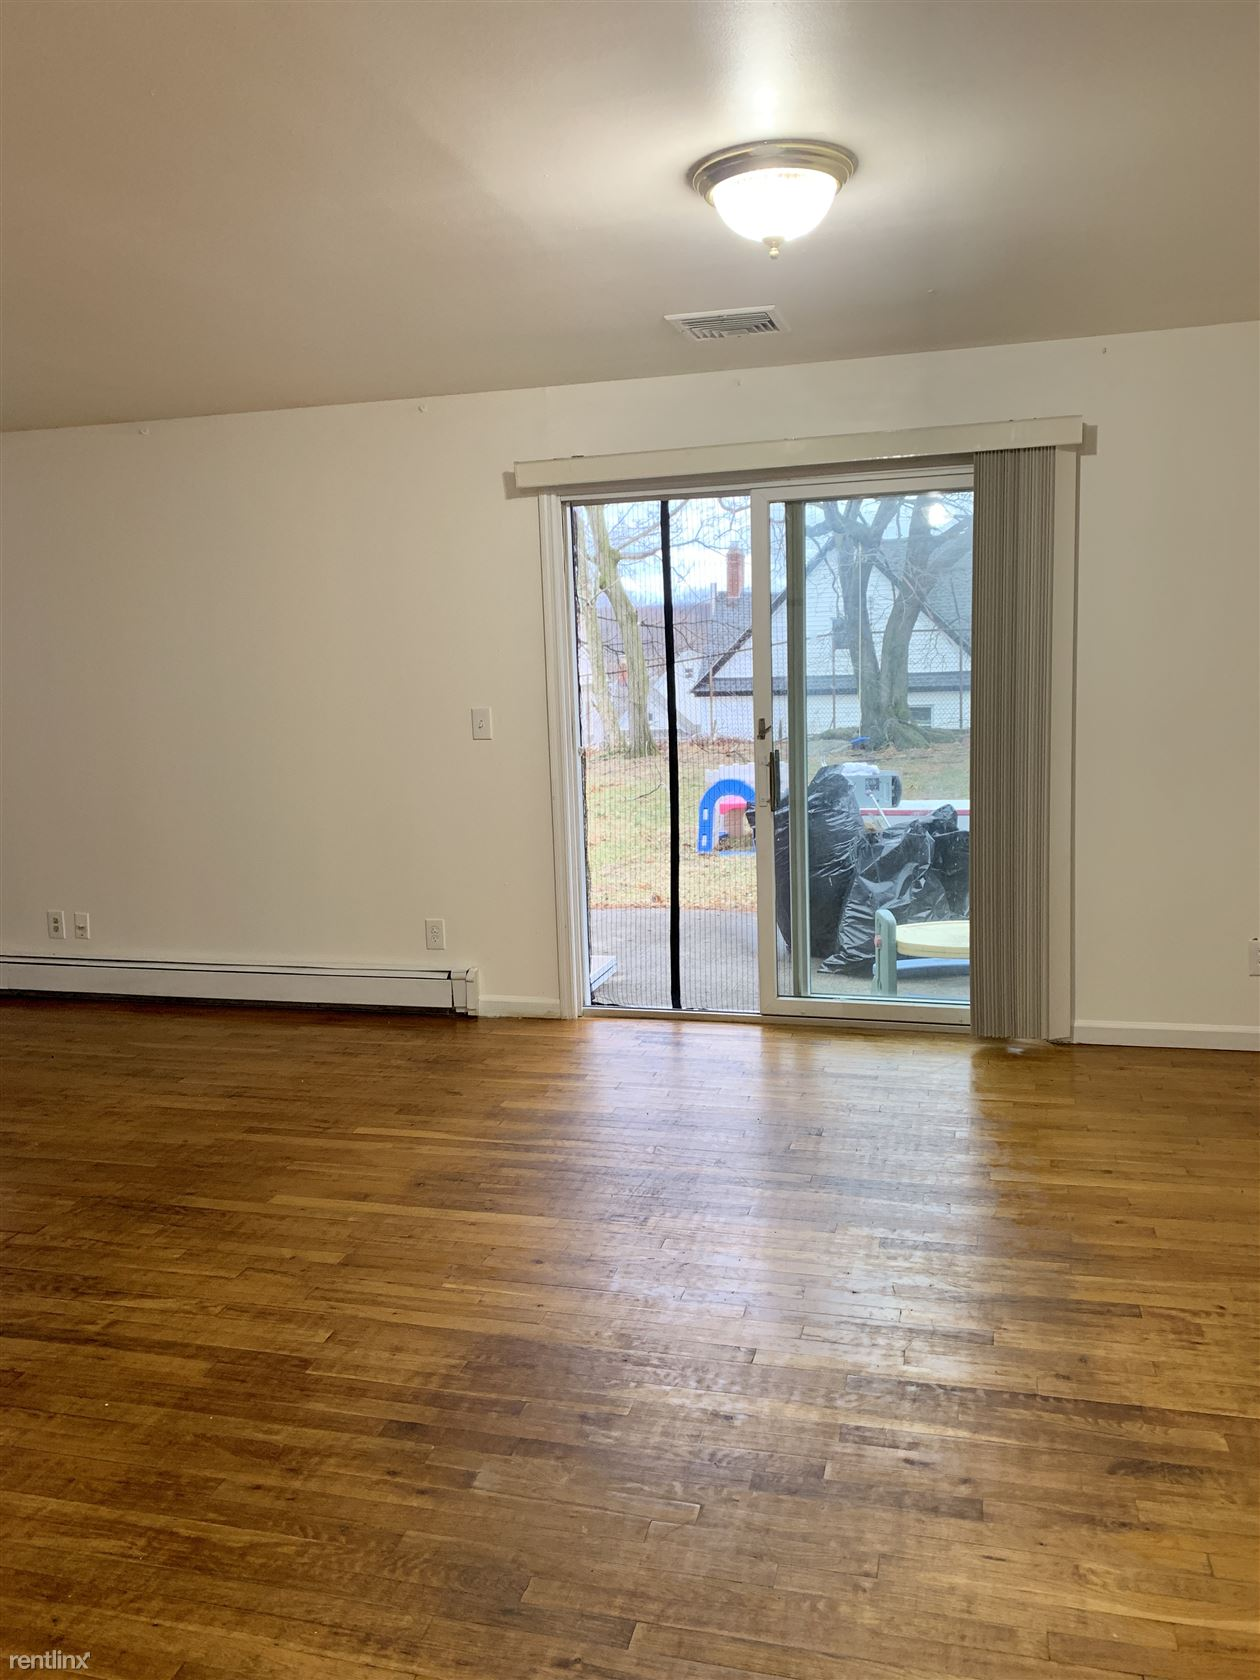 North Broadway and Roberts Ave, Yonkers, NY - $2,600